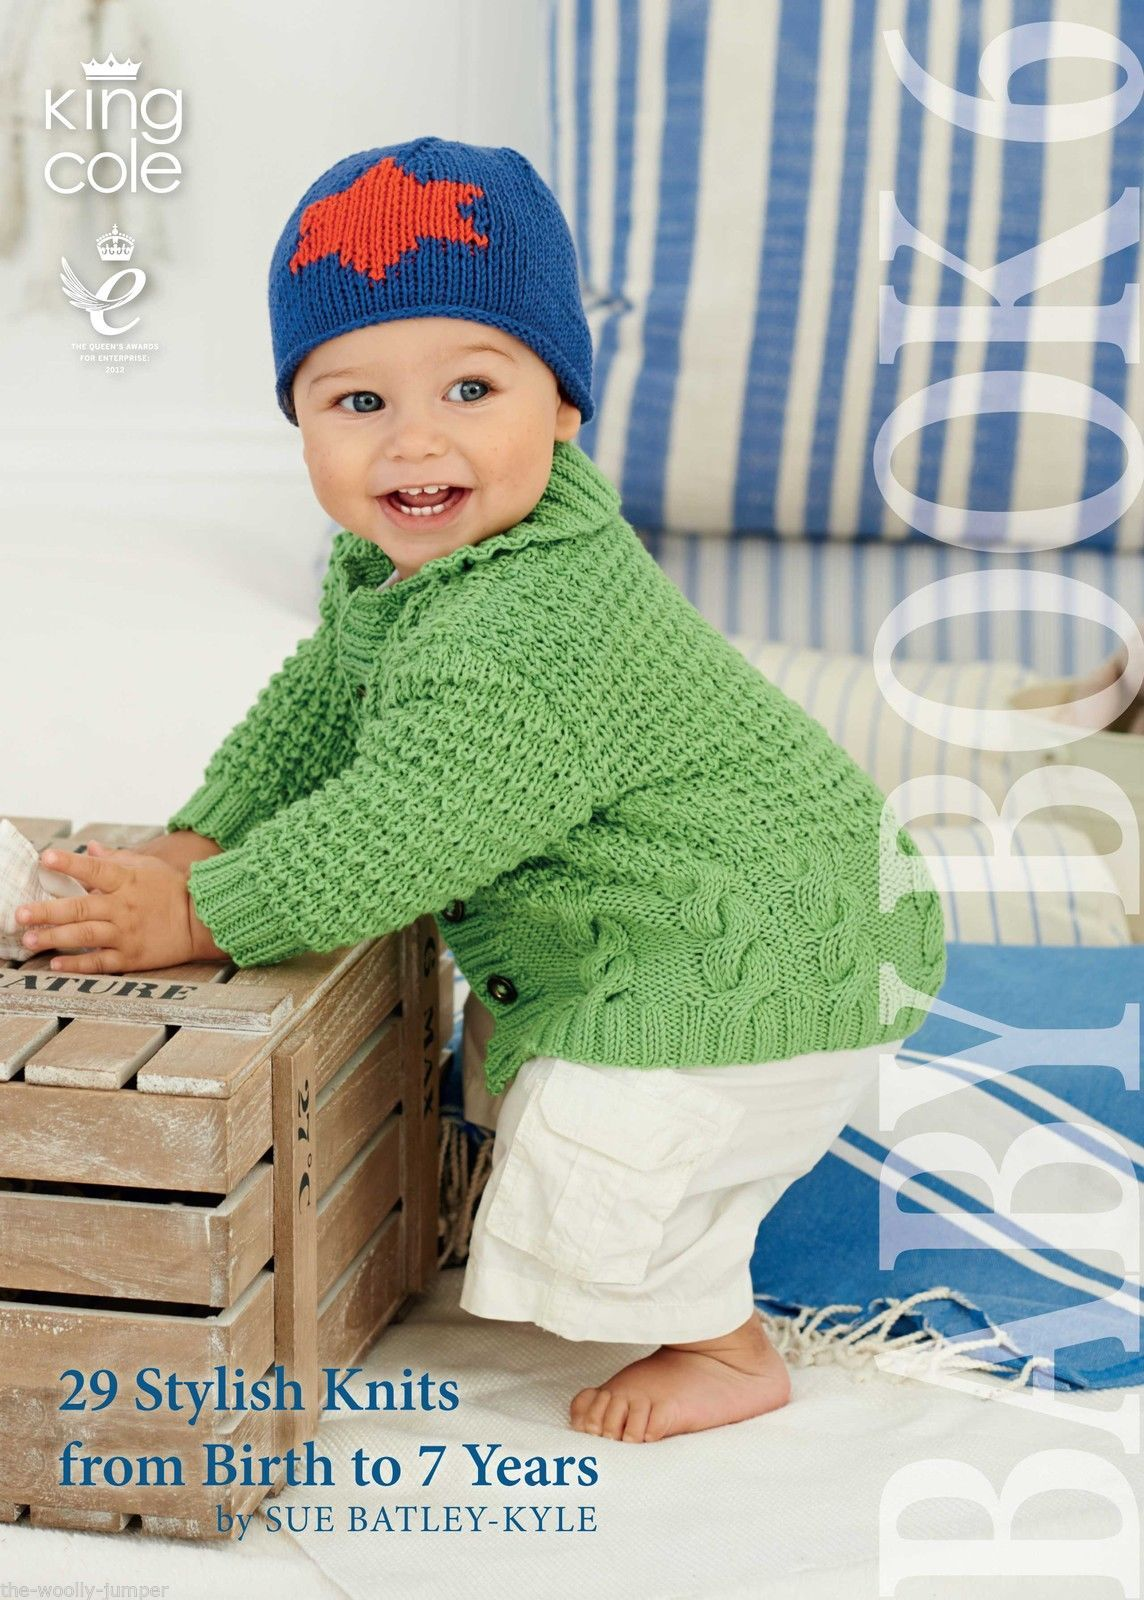 46997a243 KING COLE BABY BOOK 6 SIX - 29 STYLISH KNITS FROM BIRTH UP TO 7 YEARS